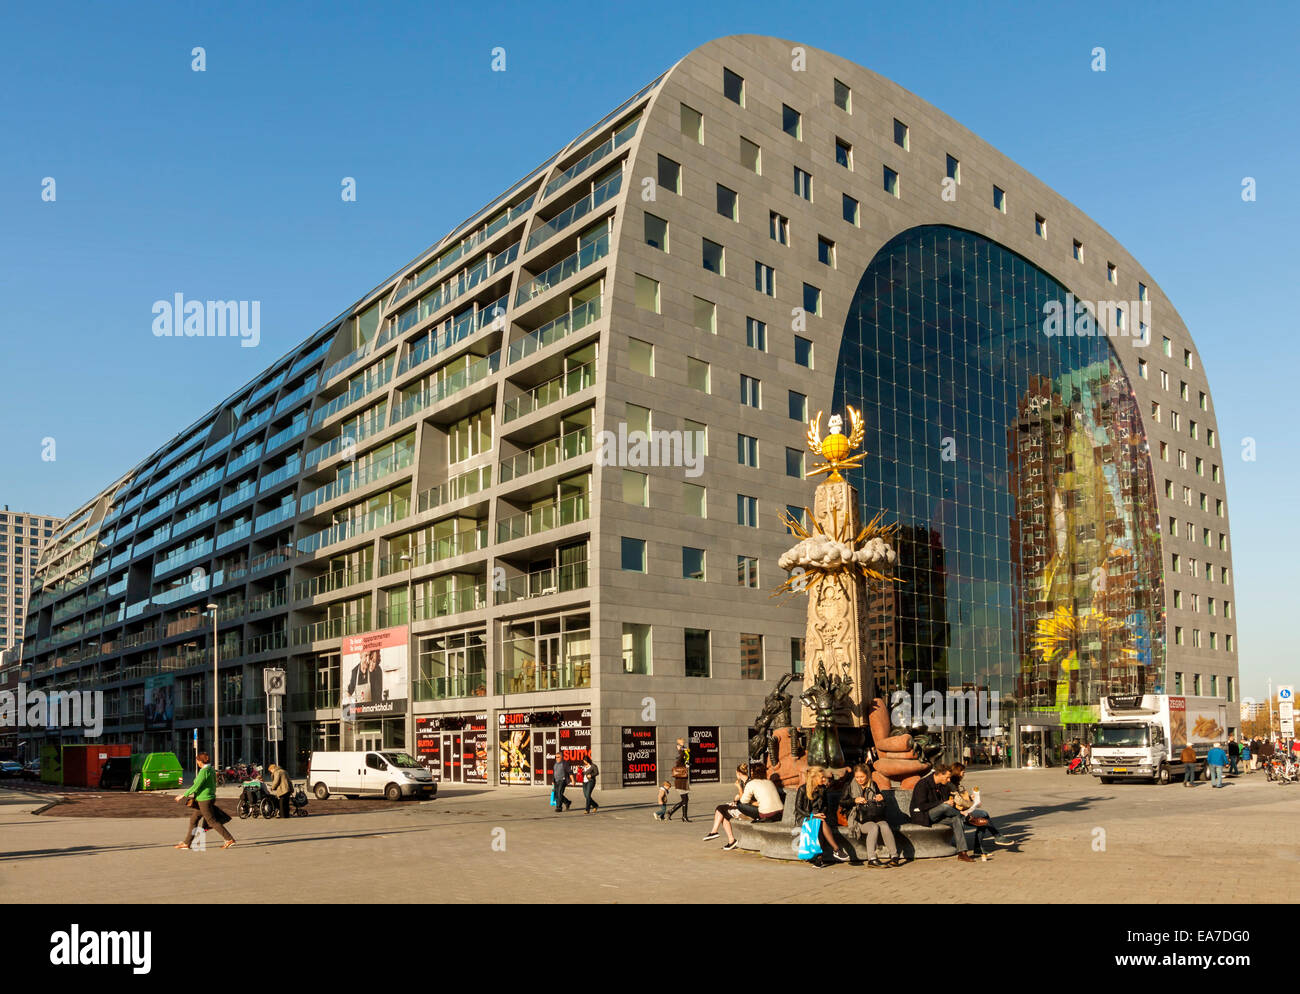 exterior view of the new market hall or in dutch markthal rotterdam stock photo 75152336 alamy. Black Bedroom Furniture Sets. Home Design Ideas